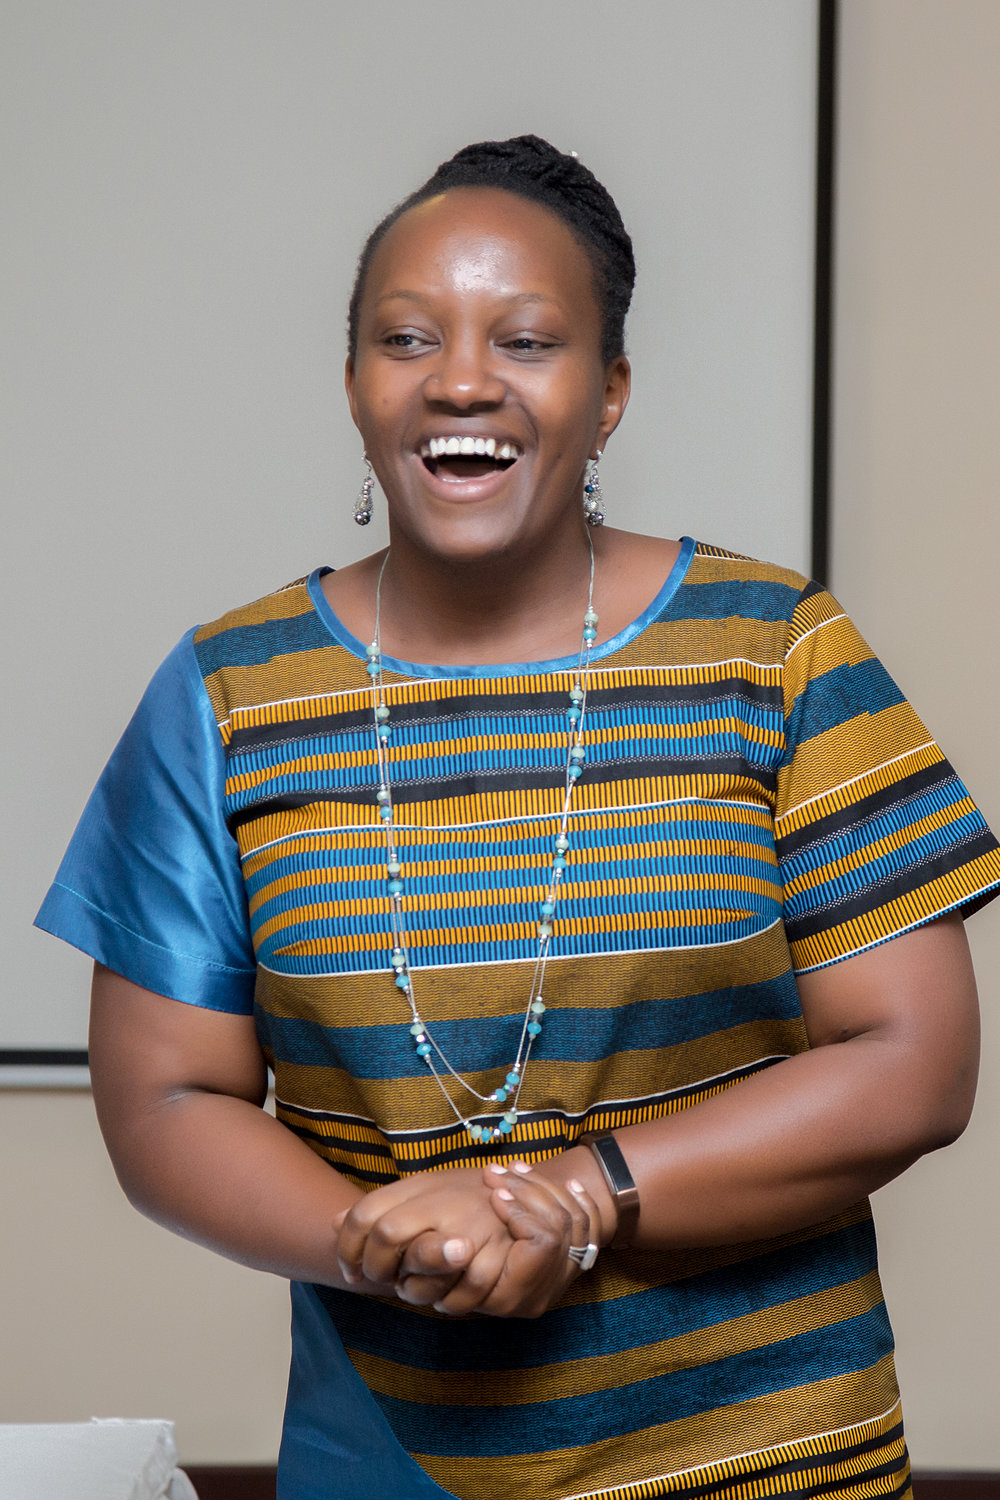 Jacqueline Asiimwe, - Chief Executive OfficerJacqueline is a Ugandan and USA trained lawyer with a record of accomplishments in leadership, management, law and policy formulation, advocacy and training. She possesses extensive experience in policy research and analysis, lobby and advocacy on human rights, governance and democratization and women's rights, with excellent communication, coordination and networking skills. Her work experience spans from civil society, government and donor agencies. Prior to starting CivSource Africa, Jacqueline worked in various technical and high-level capacities including work at a Uganda European Union civil society capacity building program, an 18 million Euro five-year project that supported civil society through grants and capacity building. Earlier, she worked in various capacities with the Justice Law and Order Sector (JLOS) Secretariat in Uganda, Federation of Women Lawyers Uganda (FIDA-U), Uganda Women's Network (UWONET) and Action for Development (ACFODE).